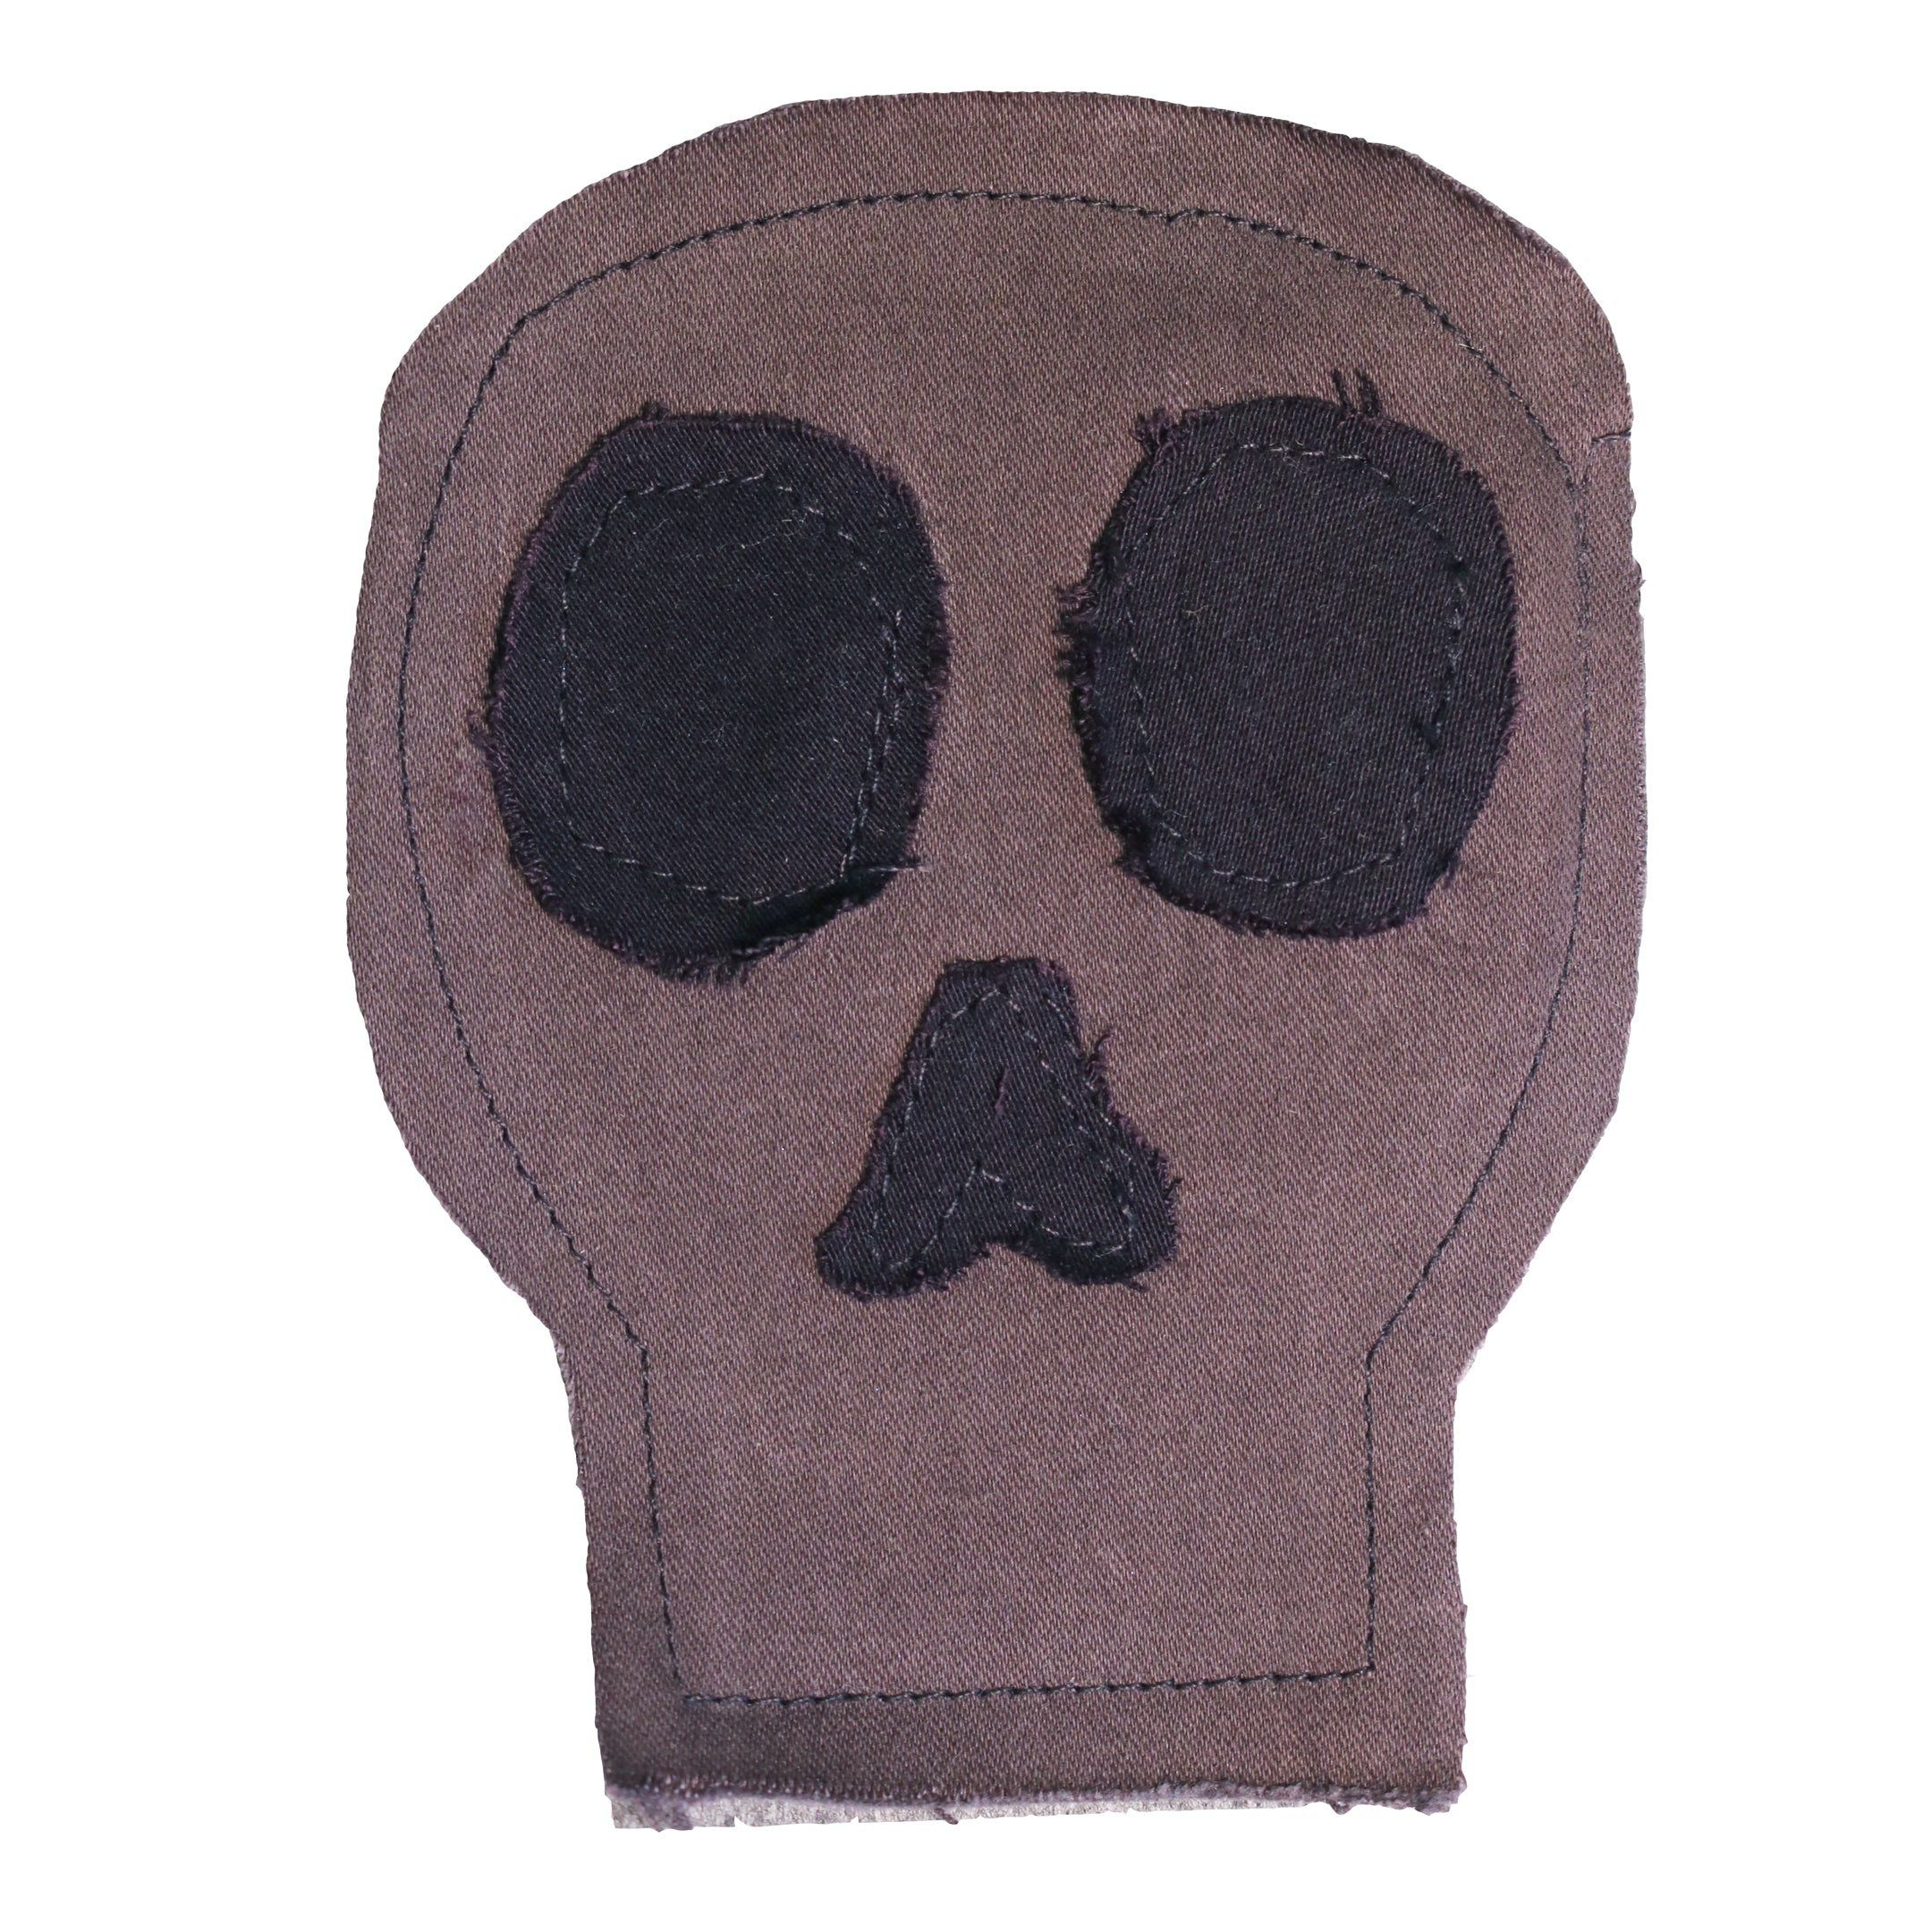 remix by stevie leigh upcycled denim skull patch grey